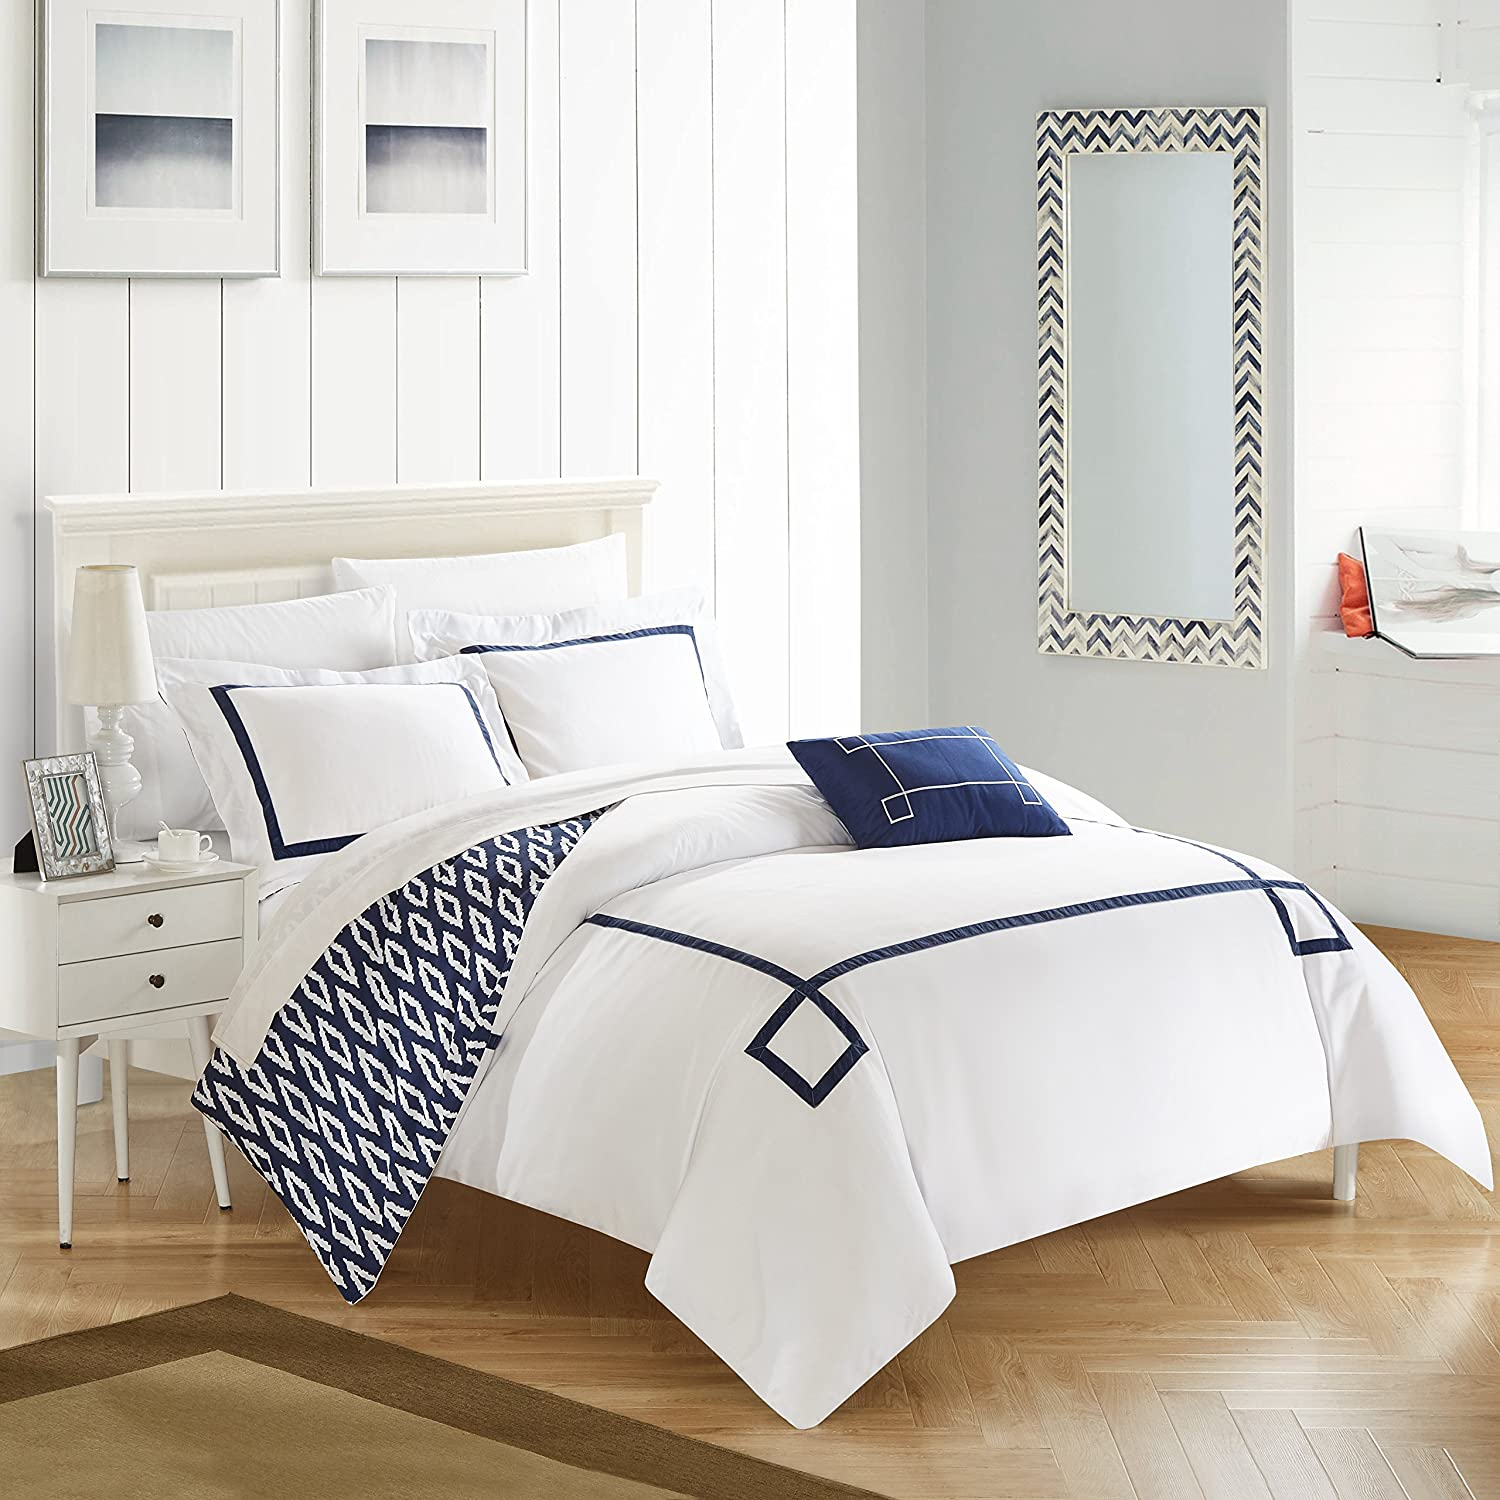 Chic Home 3 Piece Kendall Contemporary Greek Key Embroidered Reversible Twin X-Long Duvet Cover Set Navy Shams and Decorative Pillows Included, XL